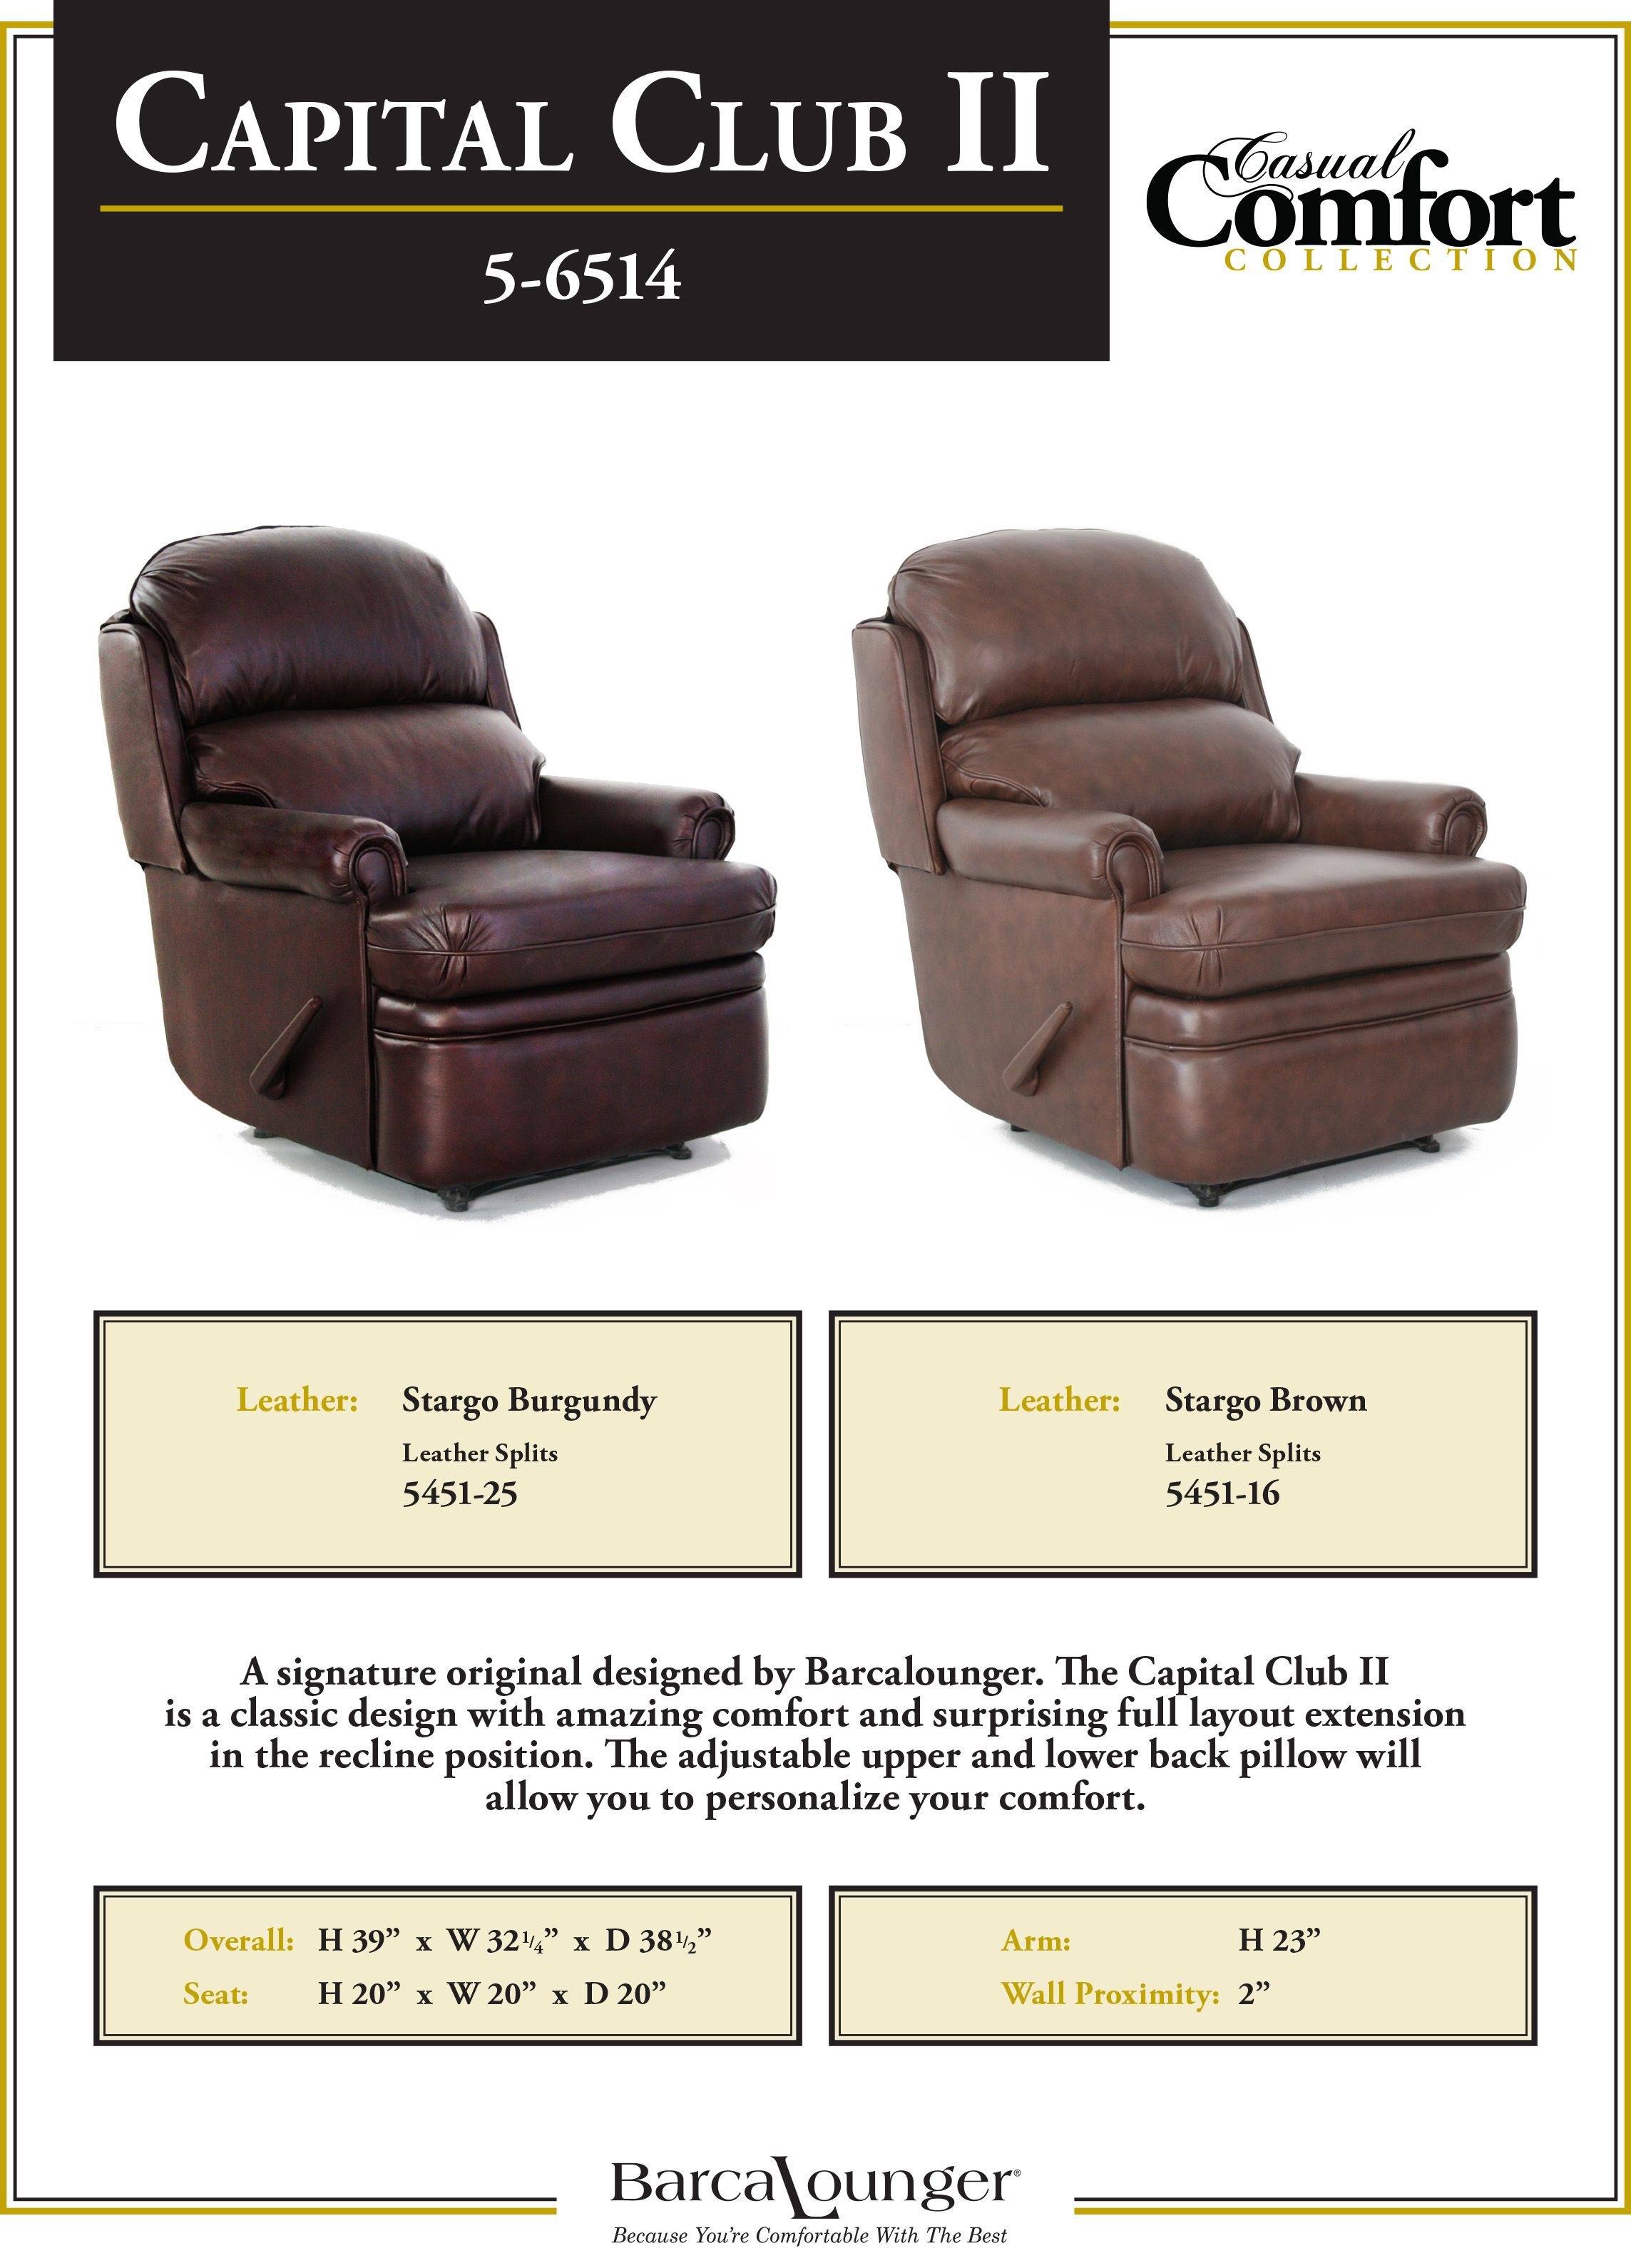 Barcalounger Capital Club II Recliner Chair Leather Dimensions : barcalounger sofa recliners - islam-shia.org